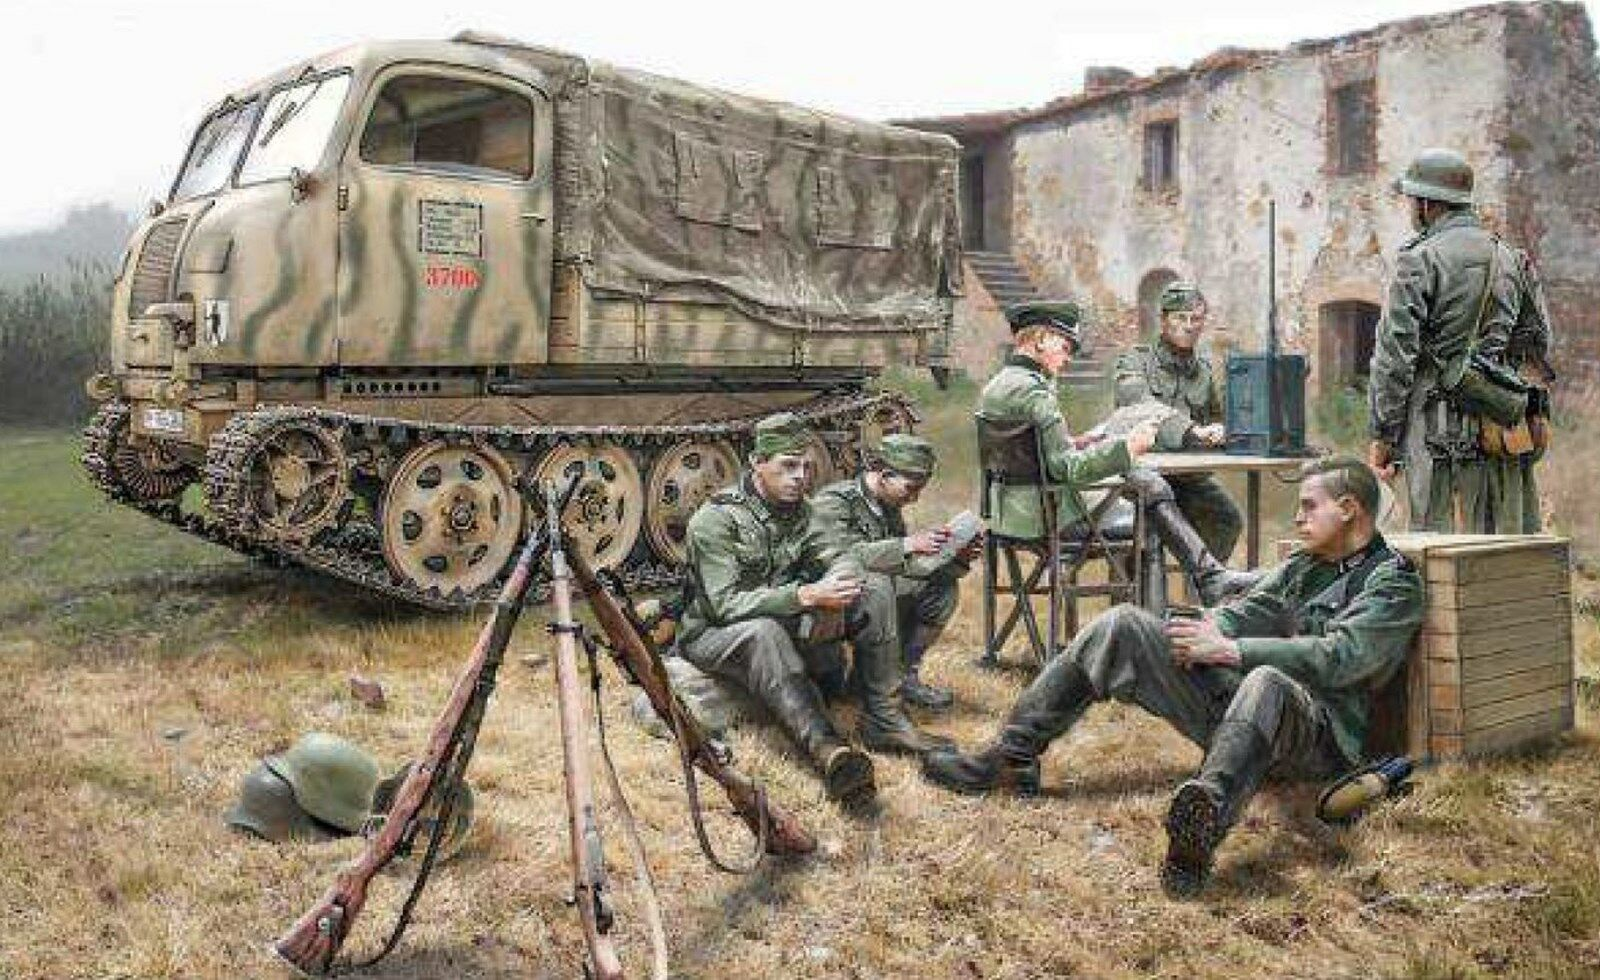 Italeri Steyr RSO 01 with German soldiers and accessories 510006549 in 1 35 6549